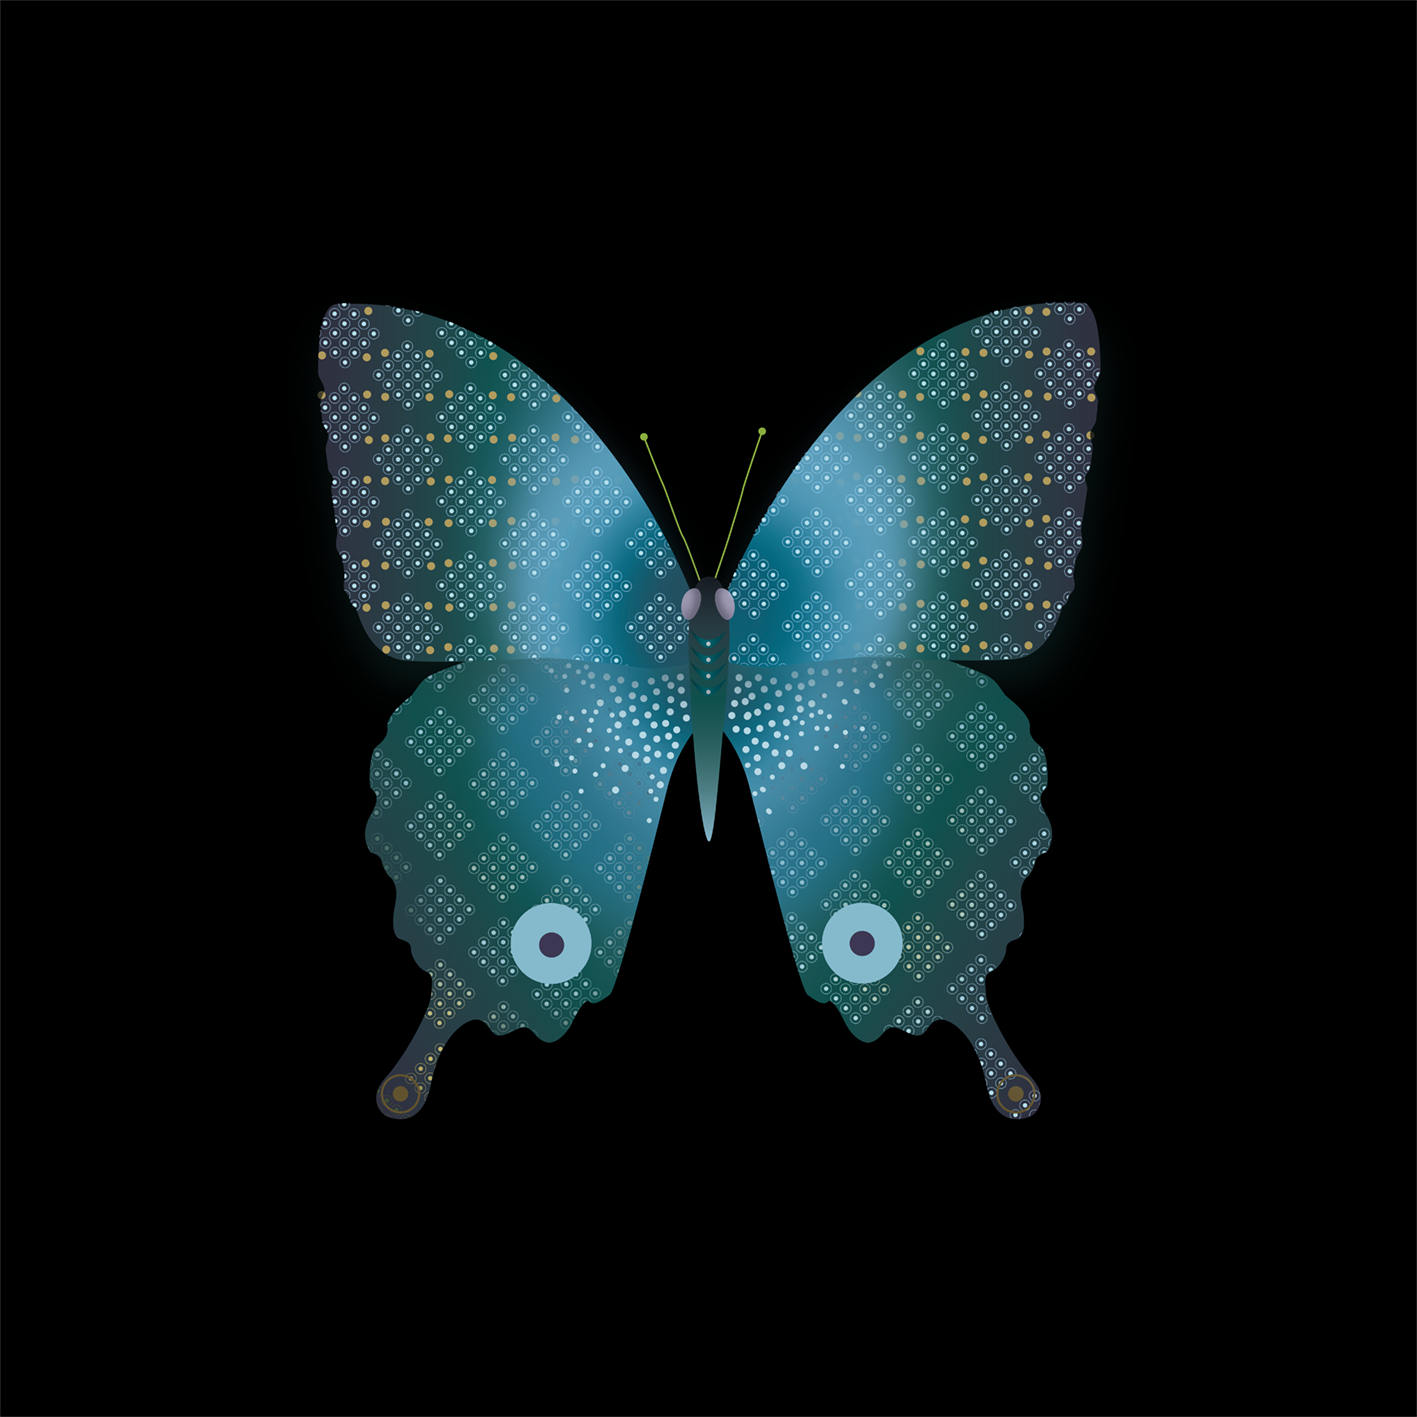 Butterfly_v1.png